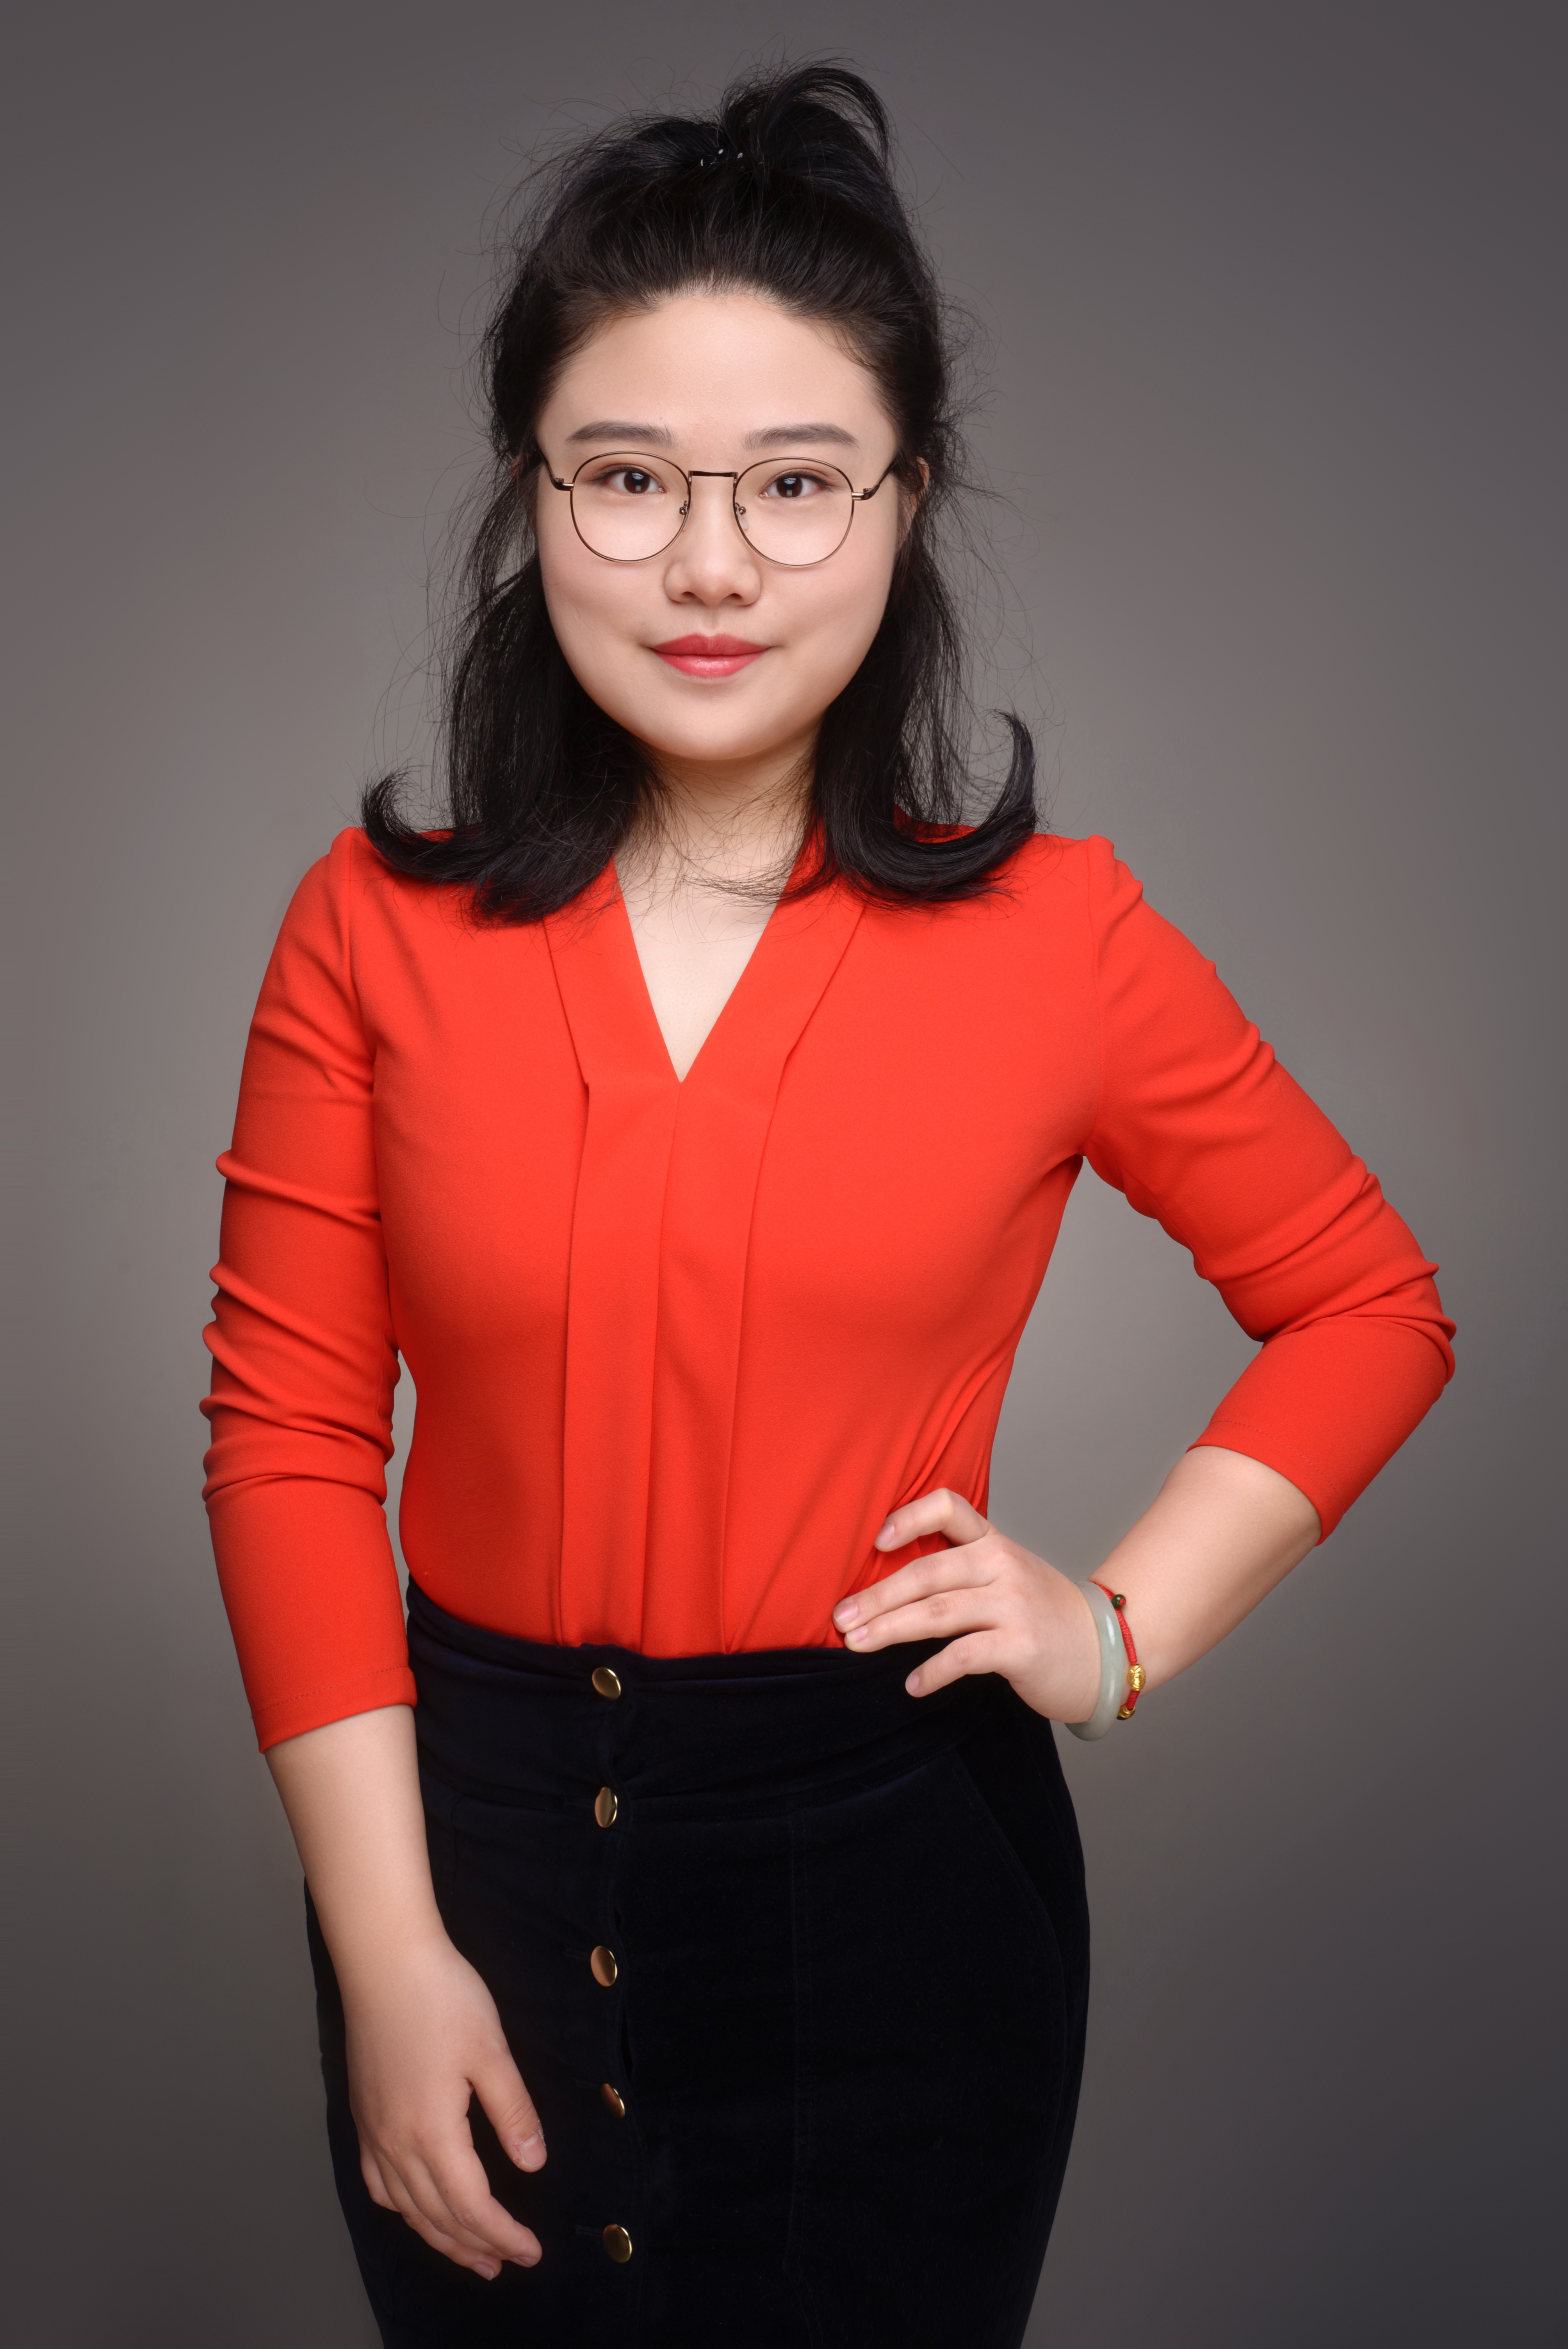 Sherry Luo